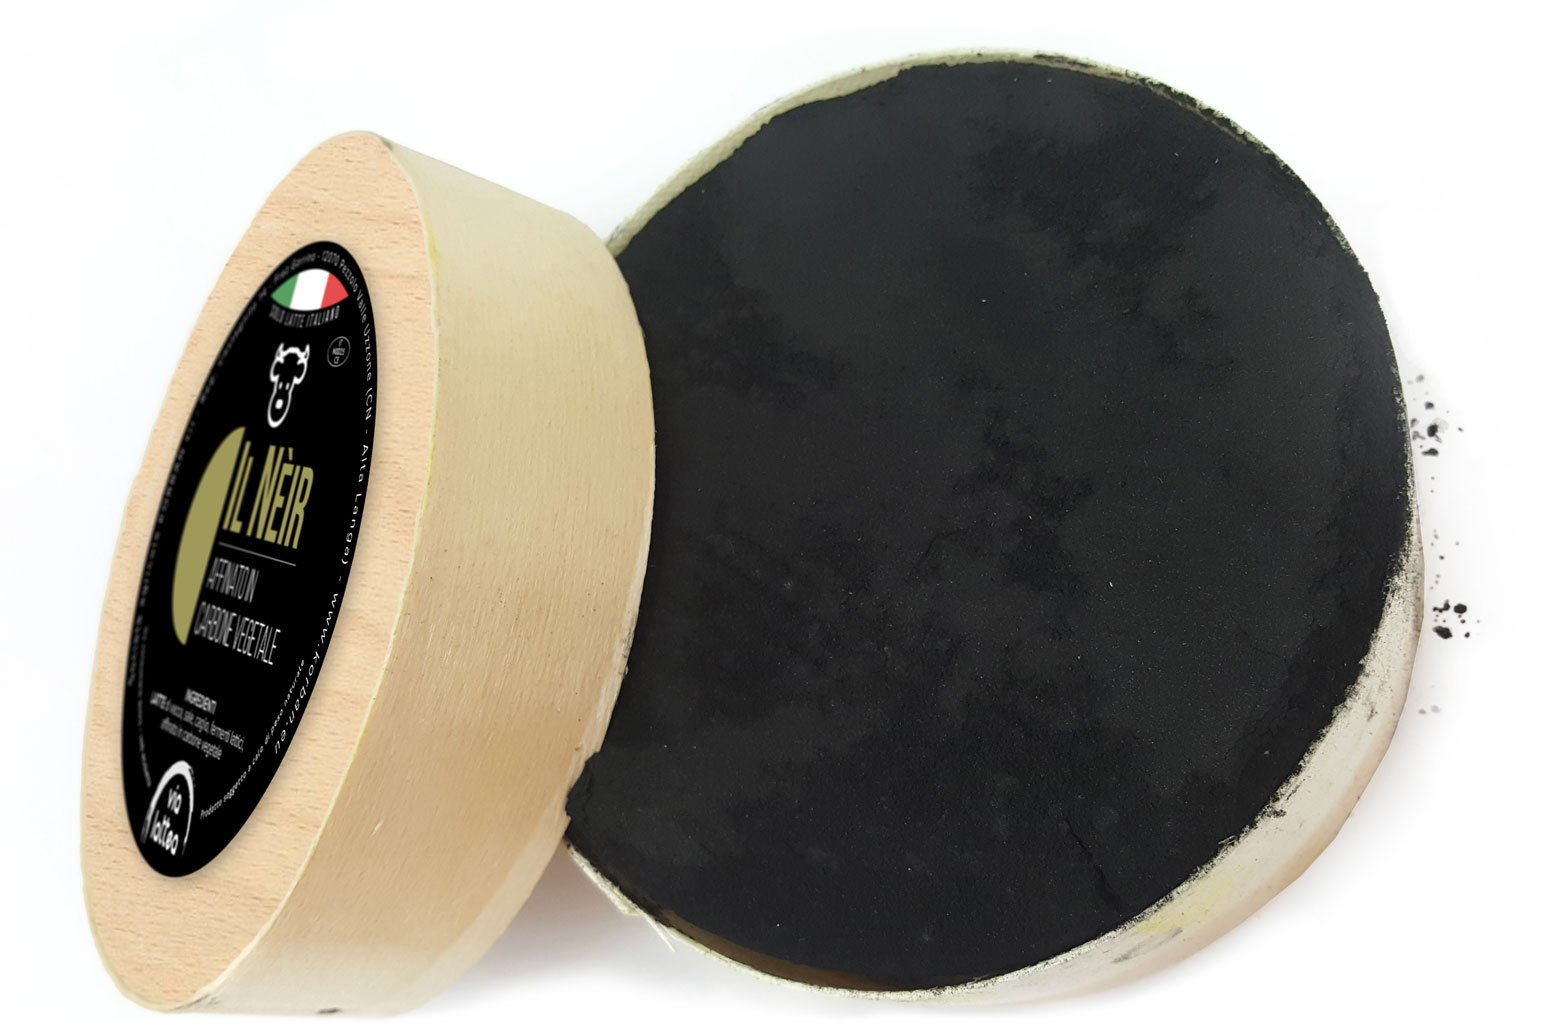 Neir cow cheese refined in charcoal